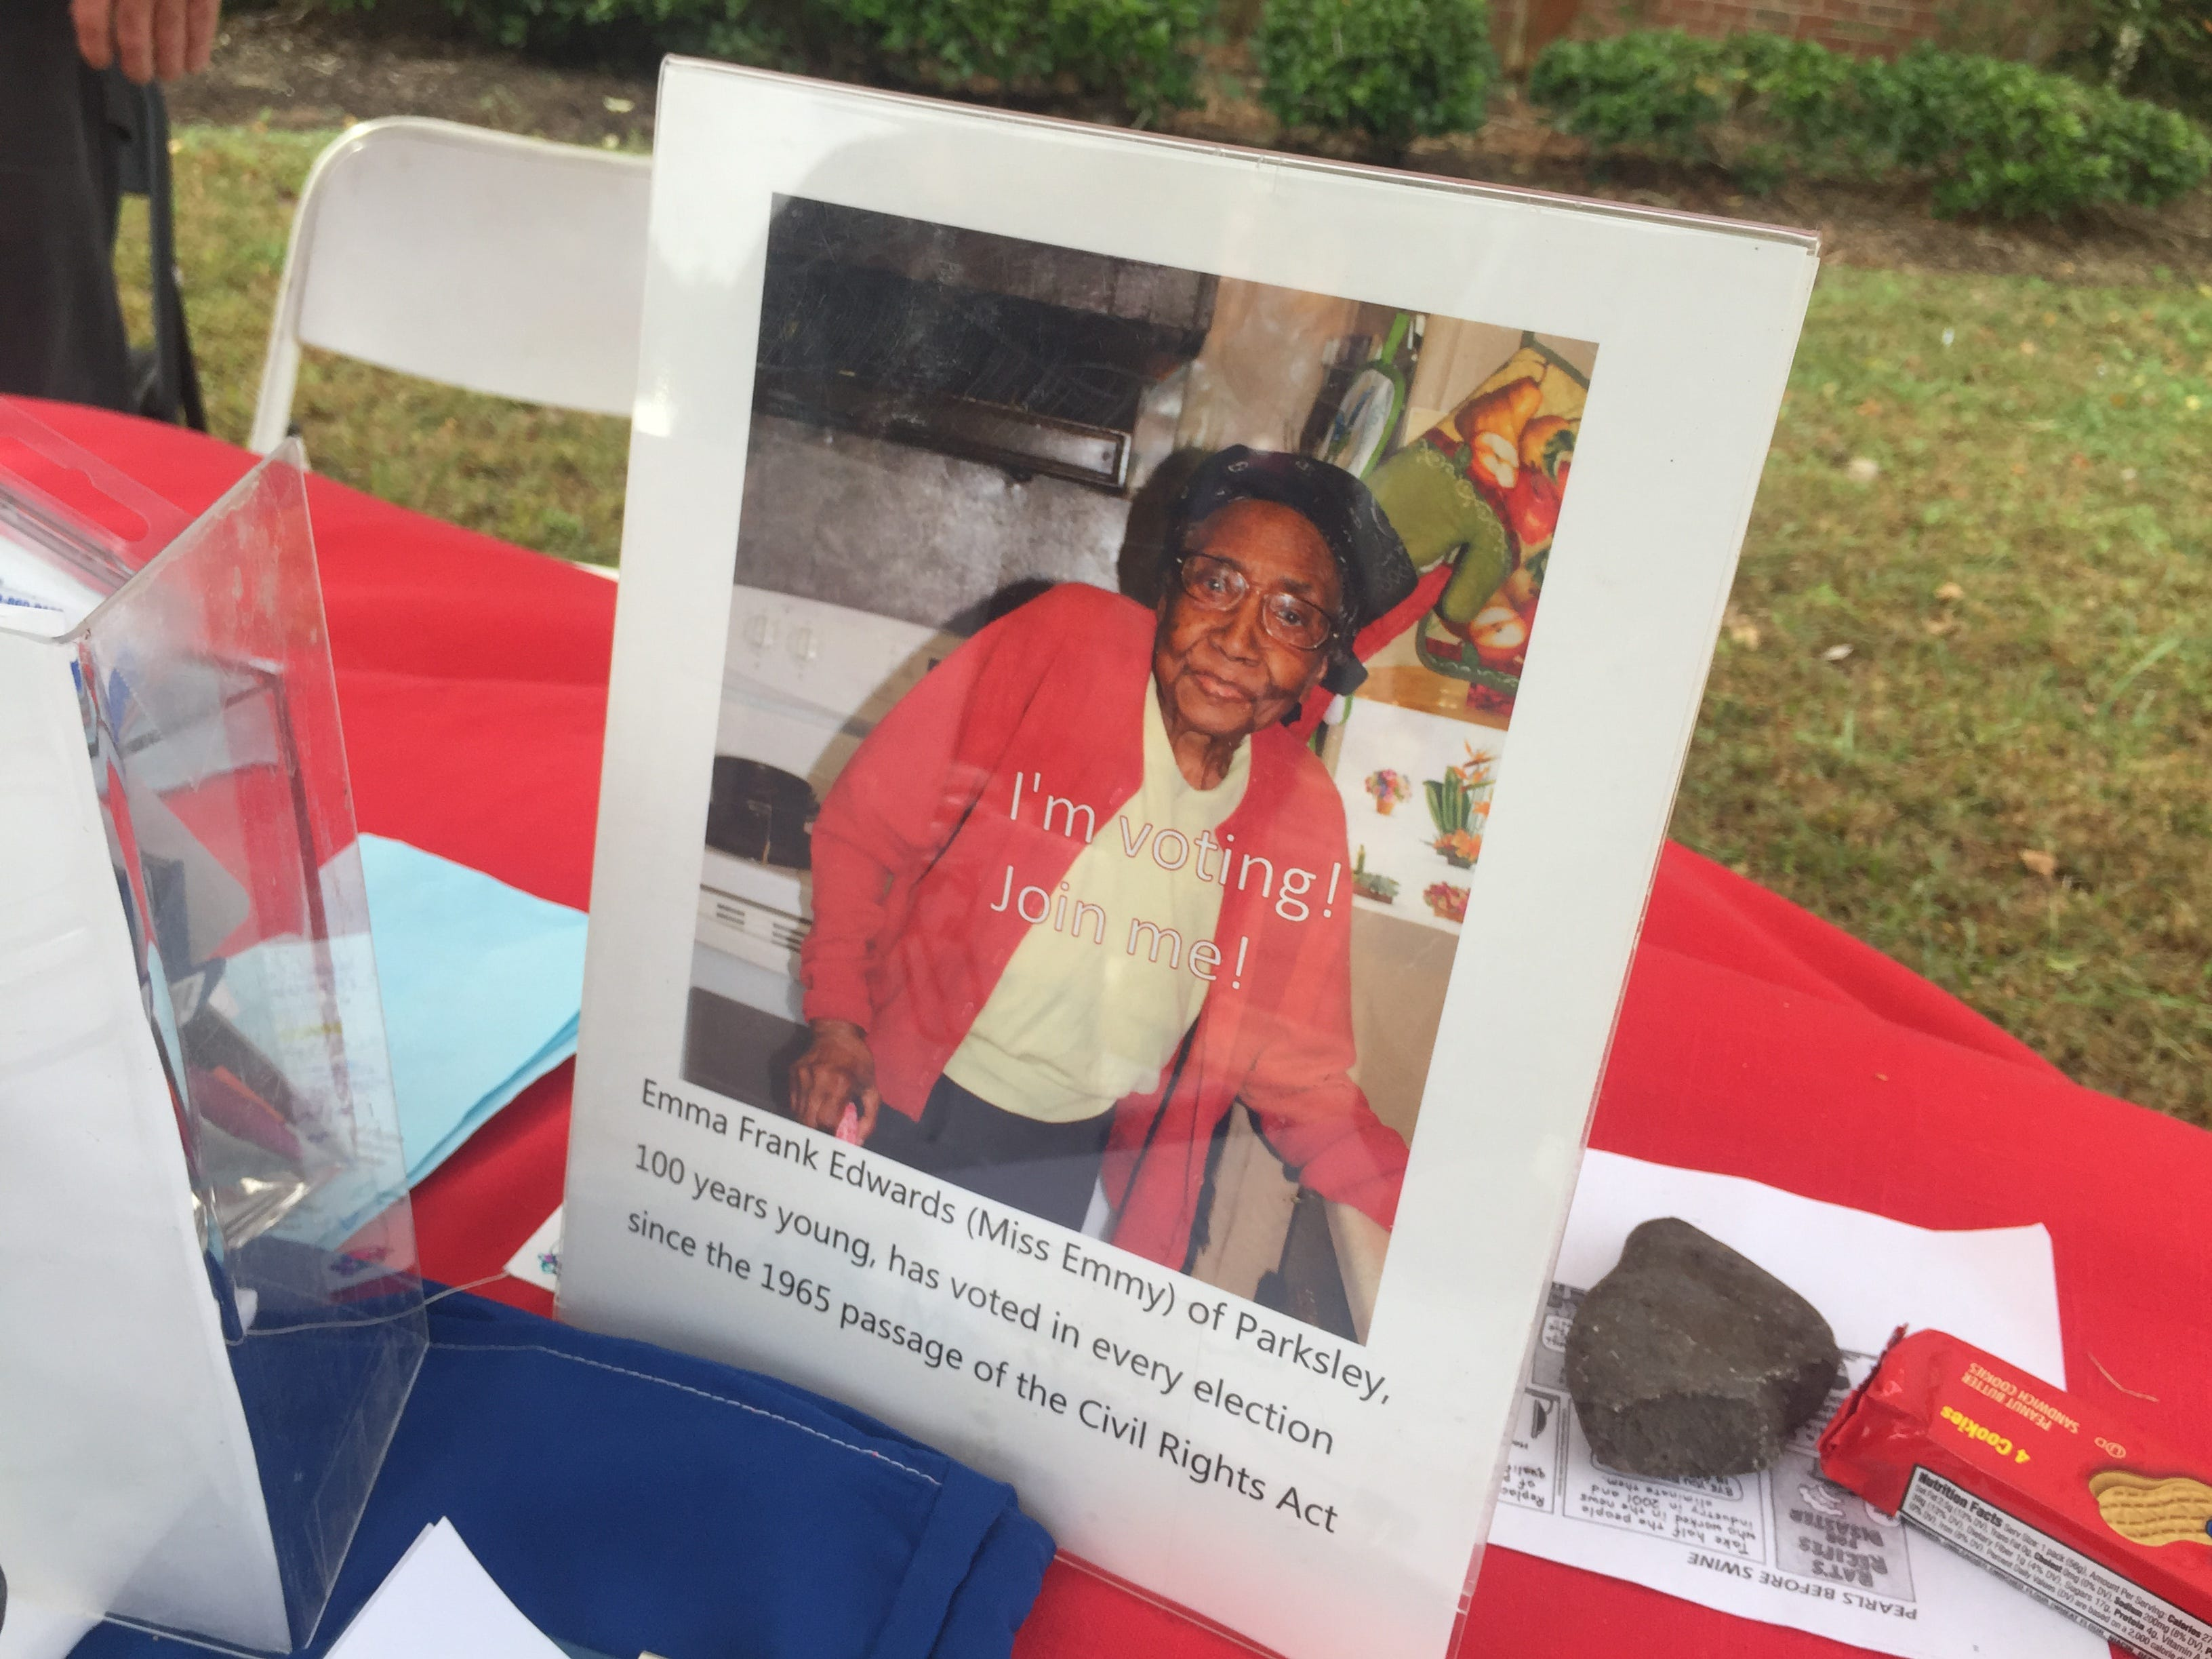 A photograph of Emma Frank Edwards, 100, of Parksley, who has voted in every election since the 1965 passage of the Civil Rights Act, is displayed at a table staffed by volunteers for the Democratic candidates outside the polling place at Nandua Middle School in Onley, Virginia on Tuesday, Nov. 6, 2018.